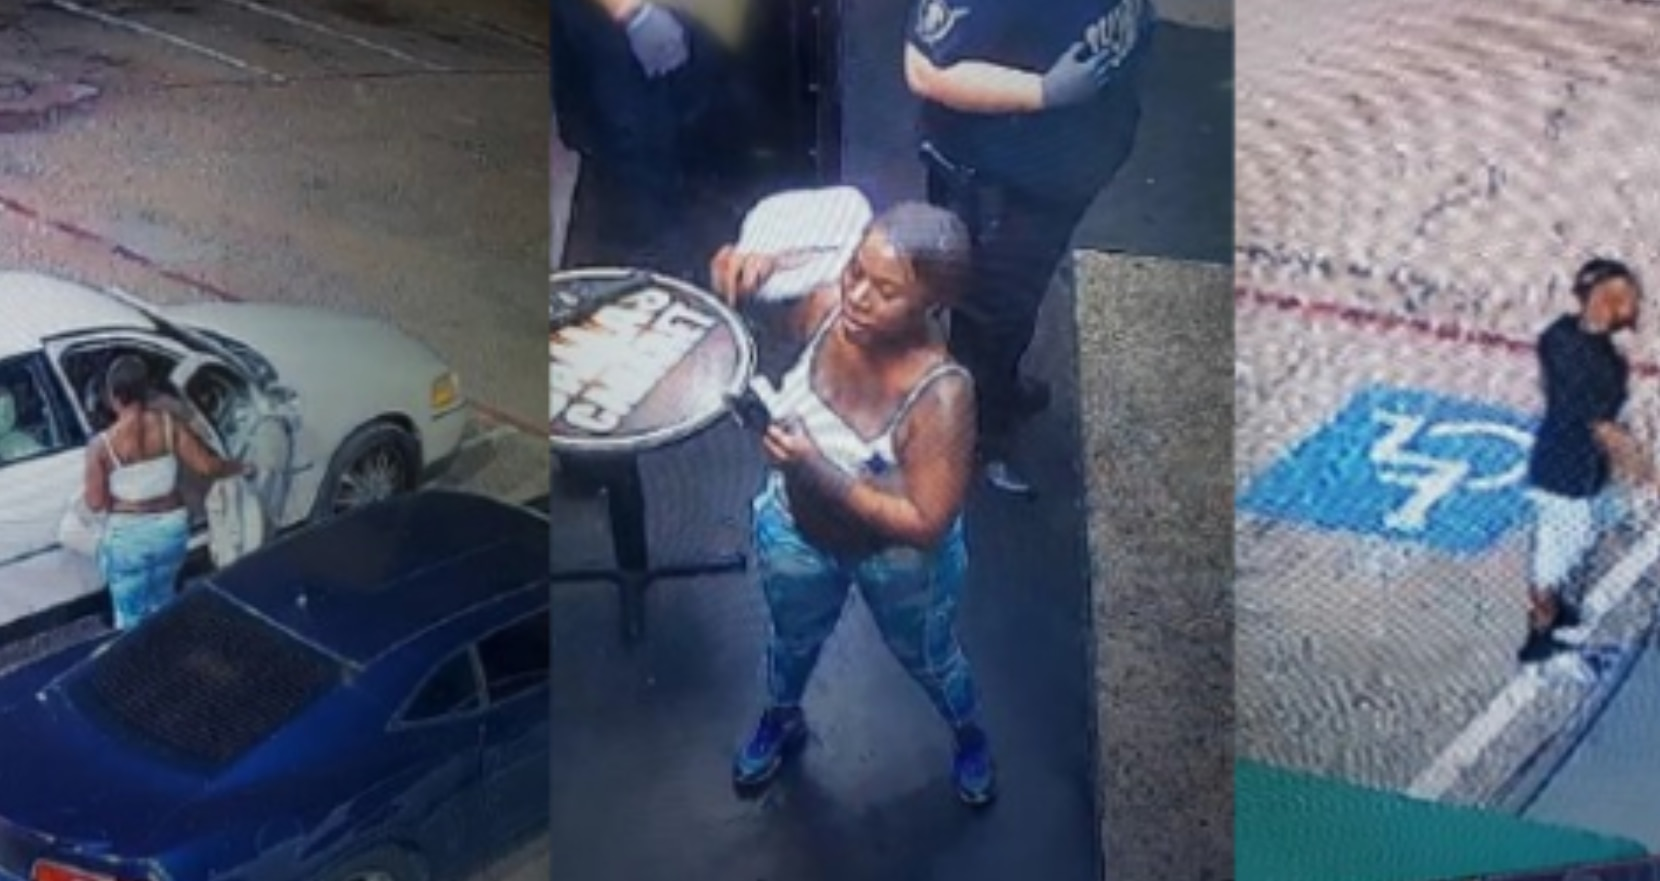 Dallas police are trying to find two people who are suspected of shooting a man Thursday in northwest Dallas. Investigators have released photos of the two suspects, who they said shot a man repeatedly on Walnut Ridge Street near Interstate 35E.